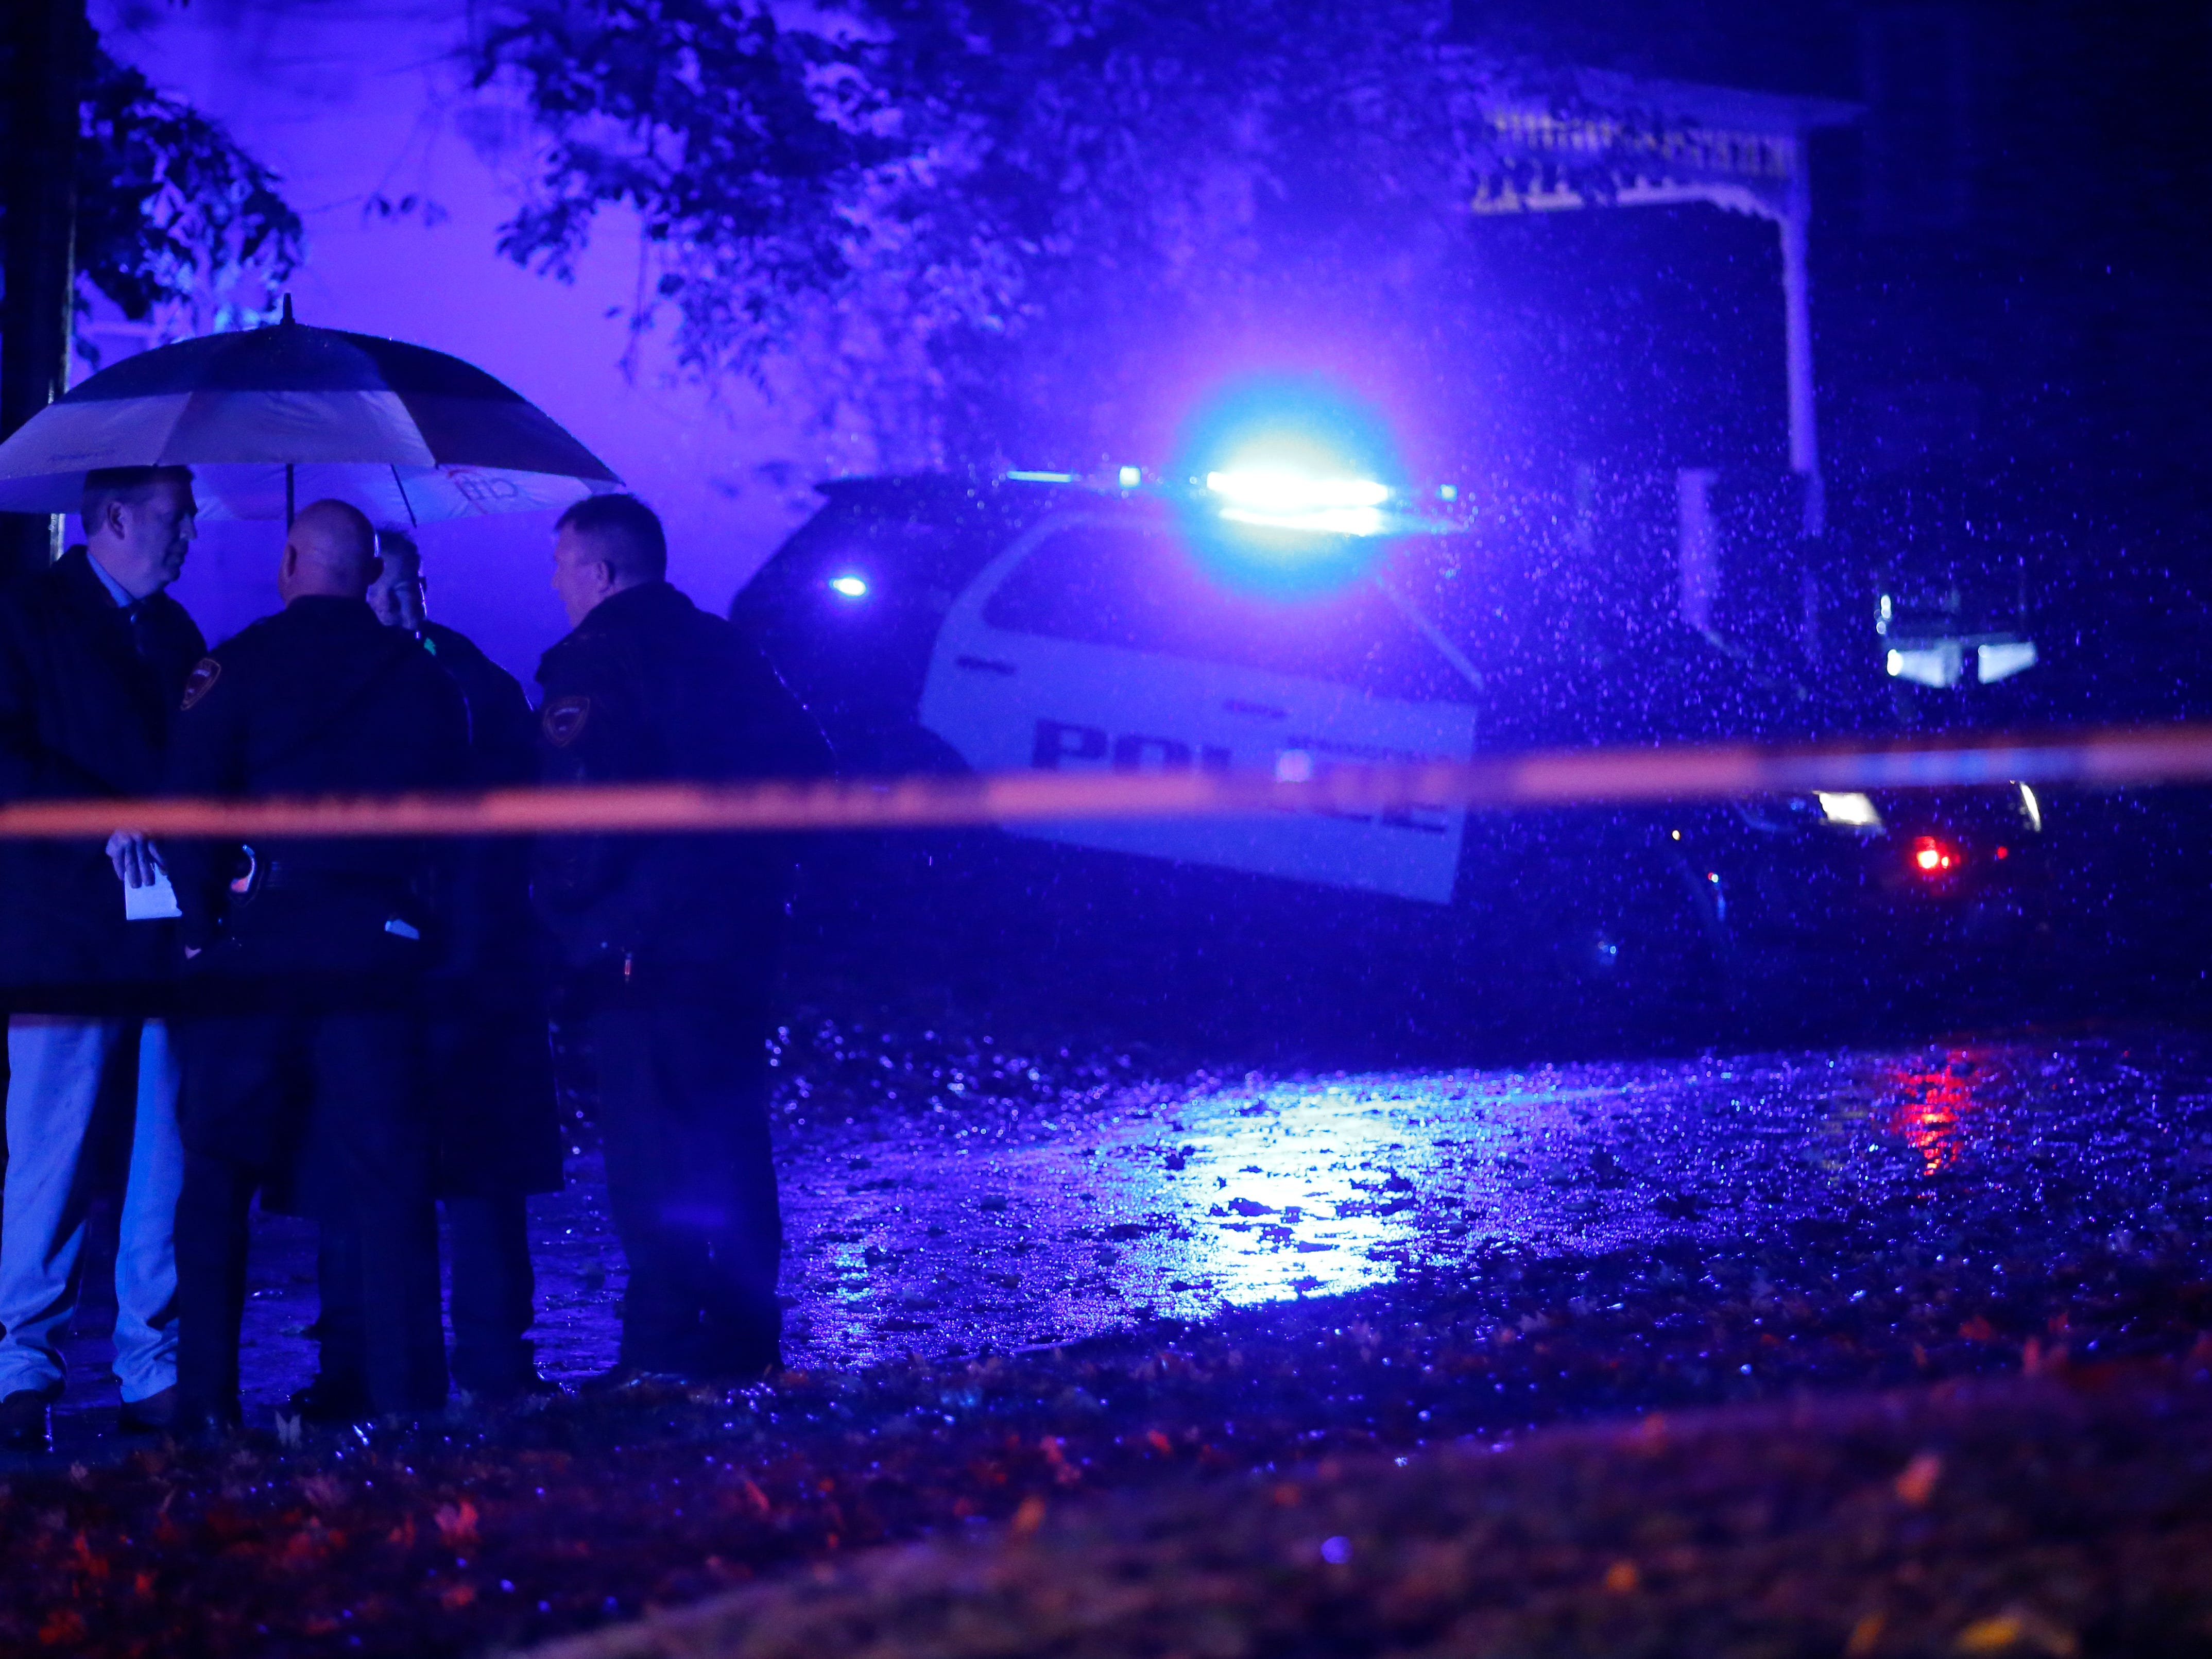 Springfield Police are investigating an overnight shooting that left at least one person dead and multiple others shot in the 900 block of East Locust Street on Thursday, Nov. 1, 2018.